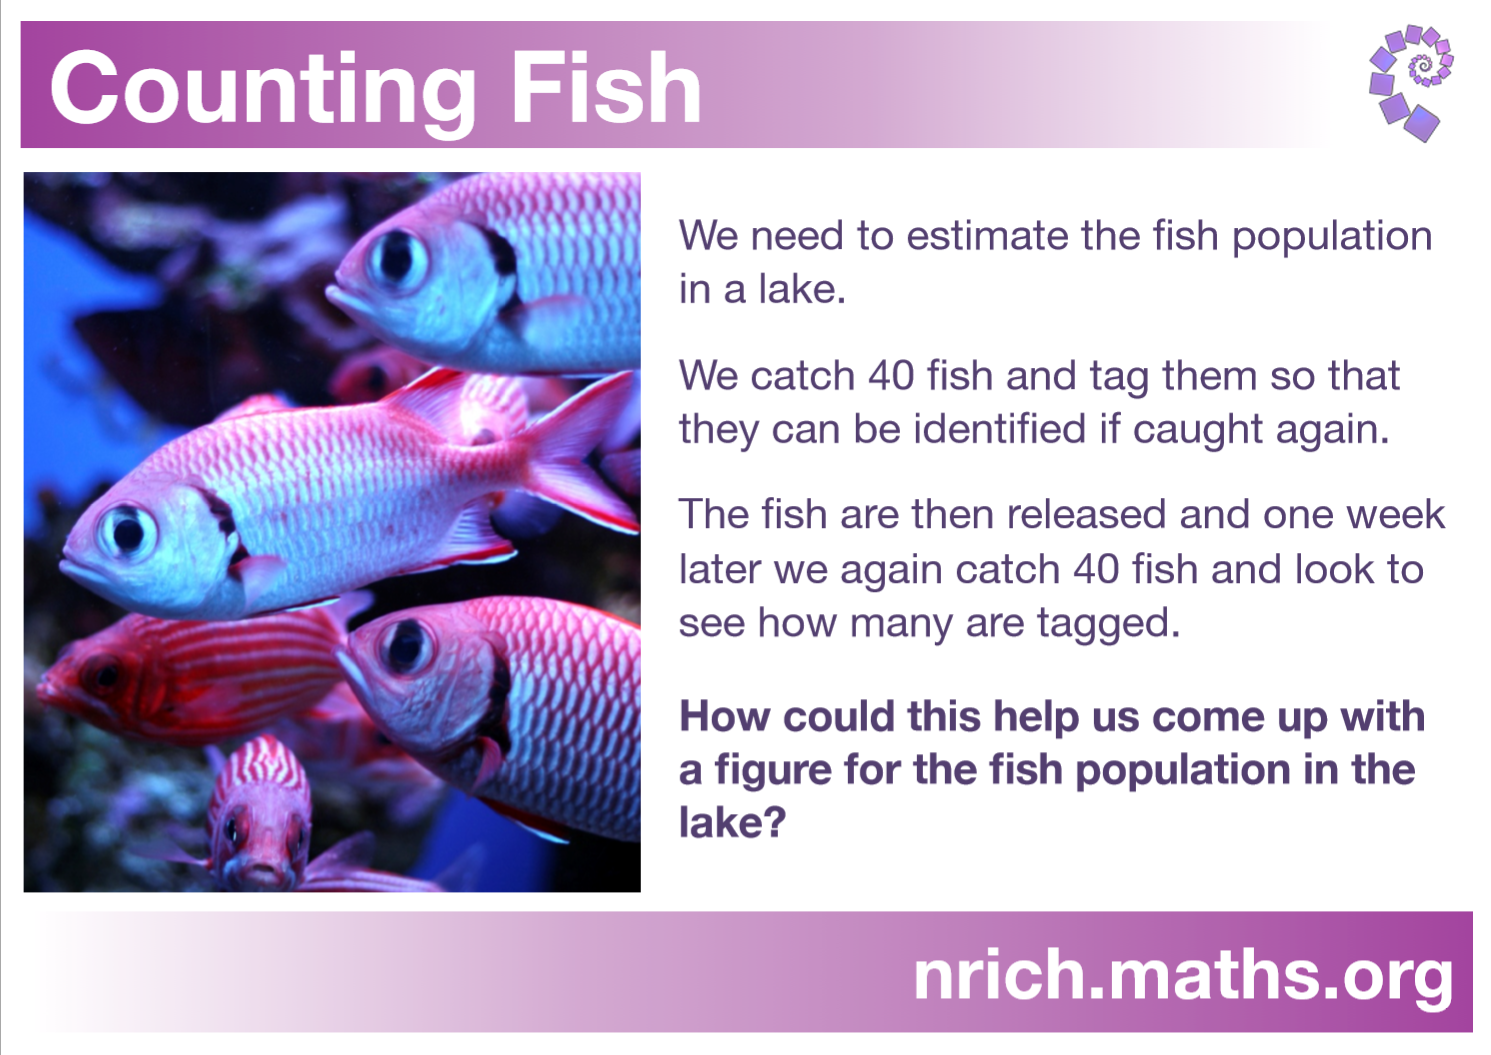 Counting Fish Poster : nrich.maths.org